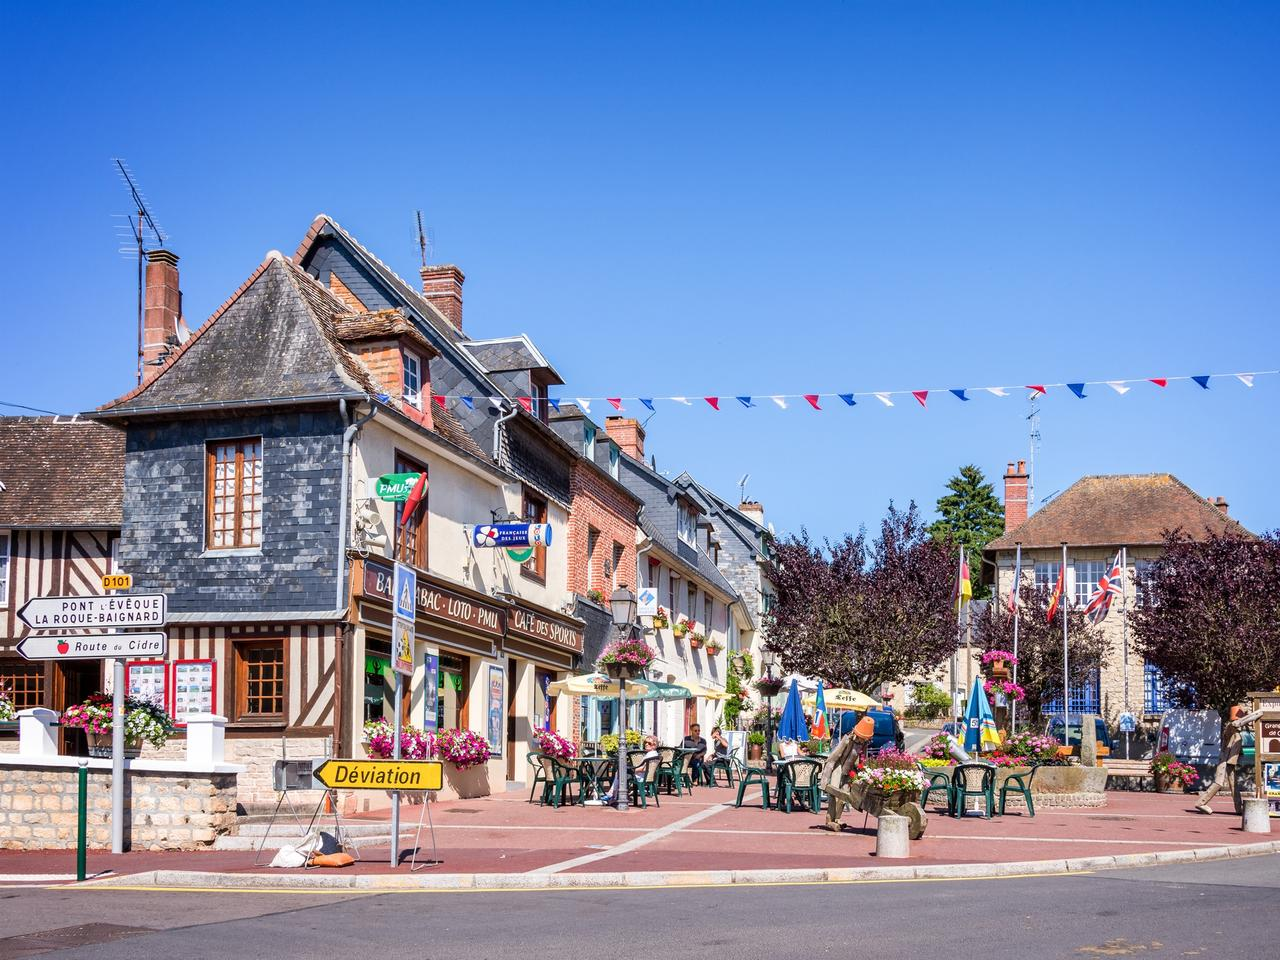 Cambremer, picturesque village in Normandy, in France